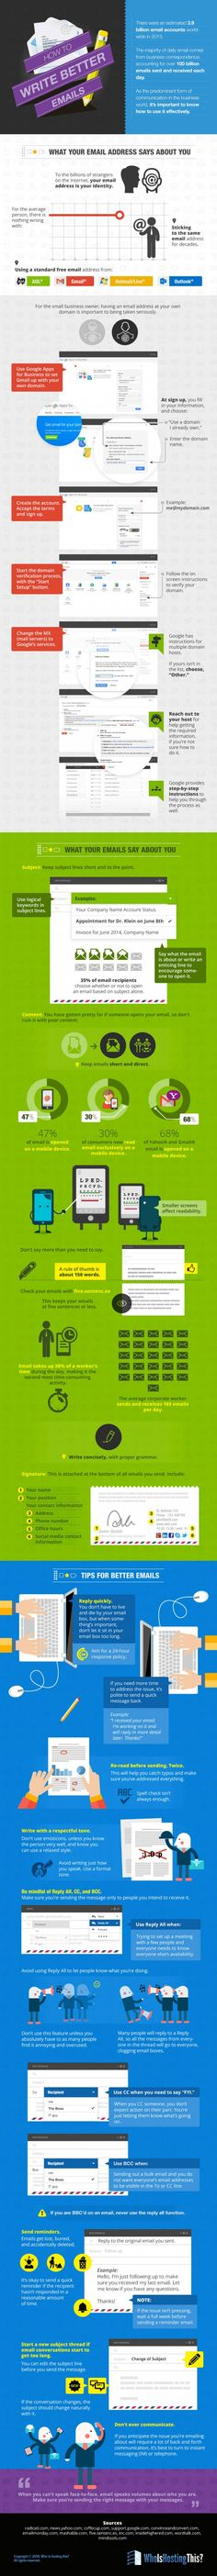 How to write a better email http://dailyinfographic.com/how-to-write-better-emails-infographic